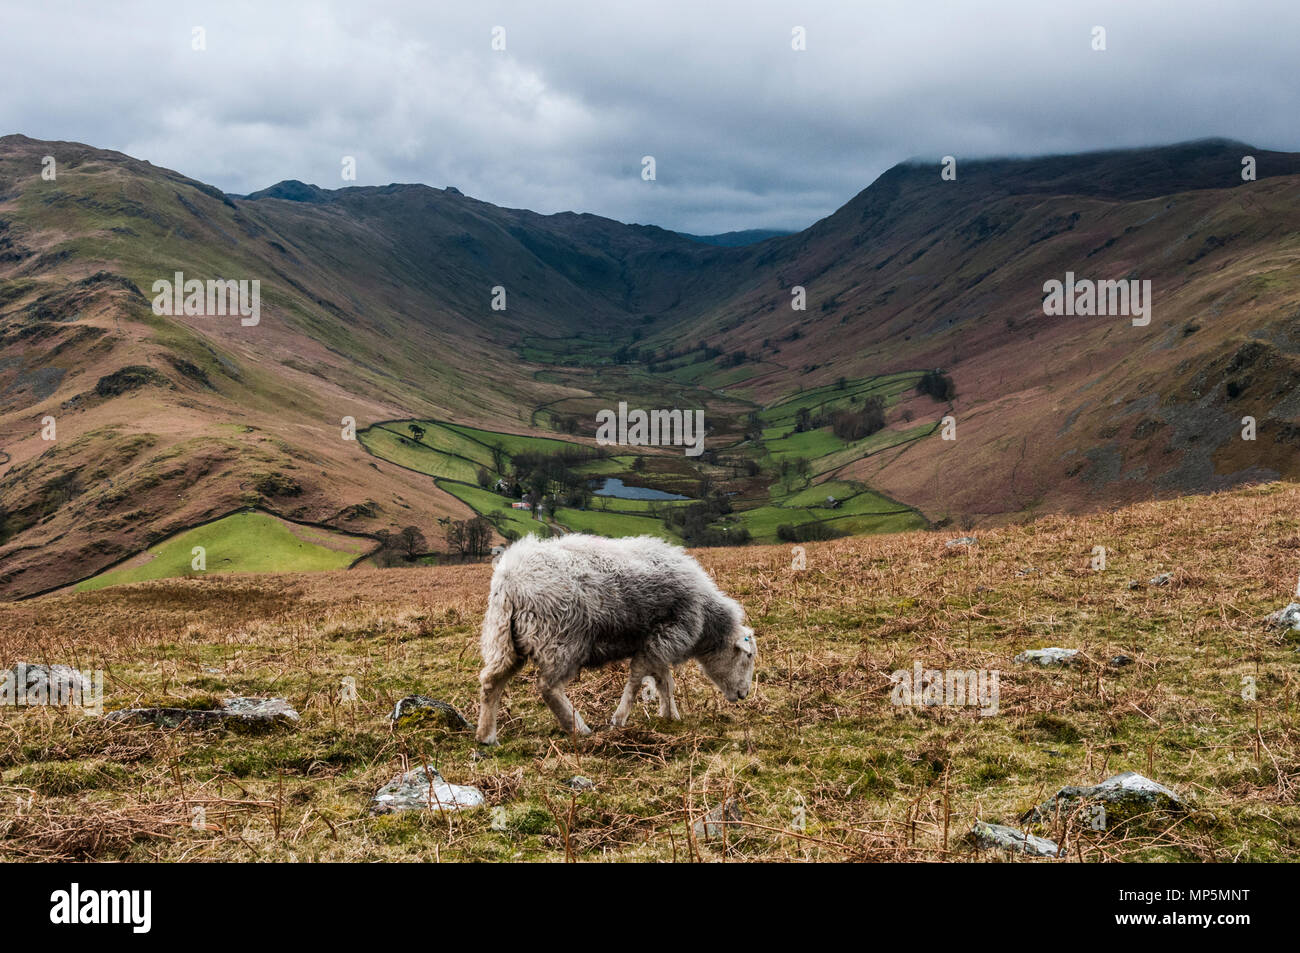 View towards Martindale from Hallin Fell, Cumbria, UK. - Stock Image